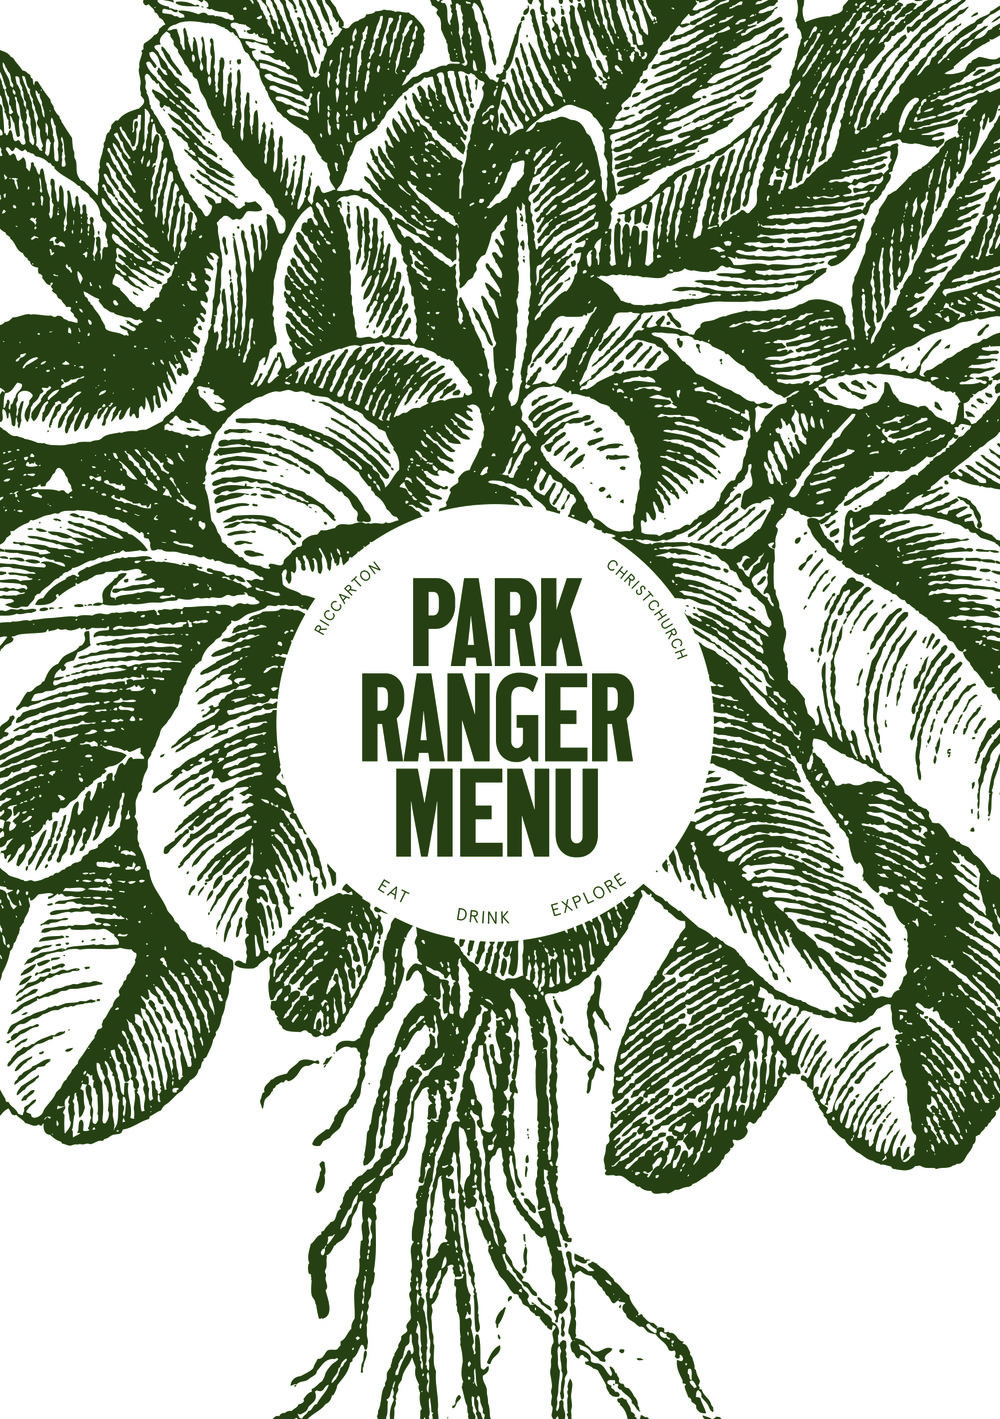 Park Ranger Menu Jan 2018.jpg